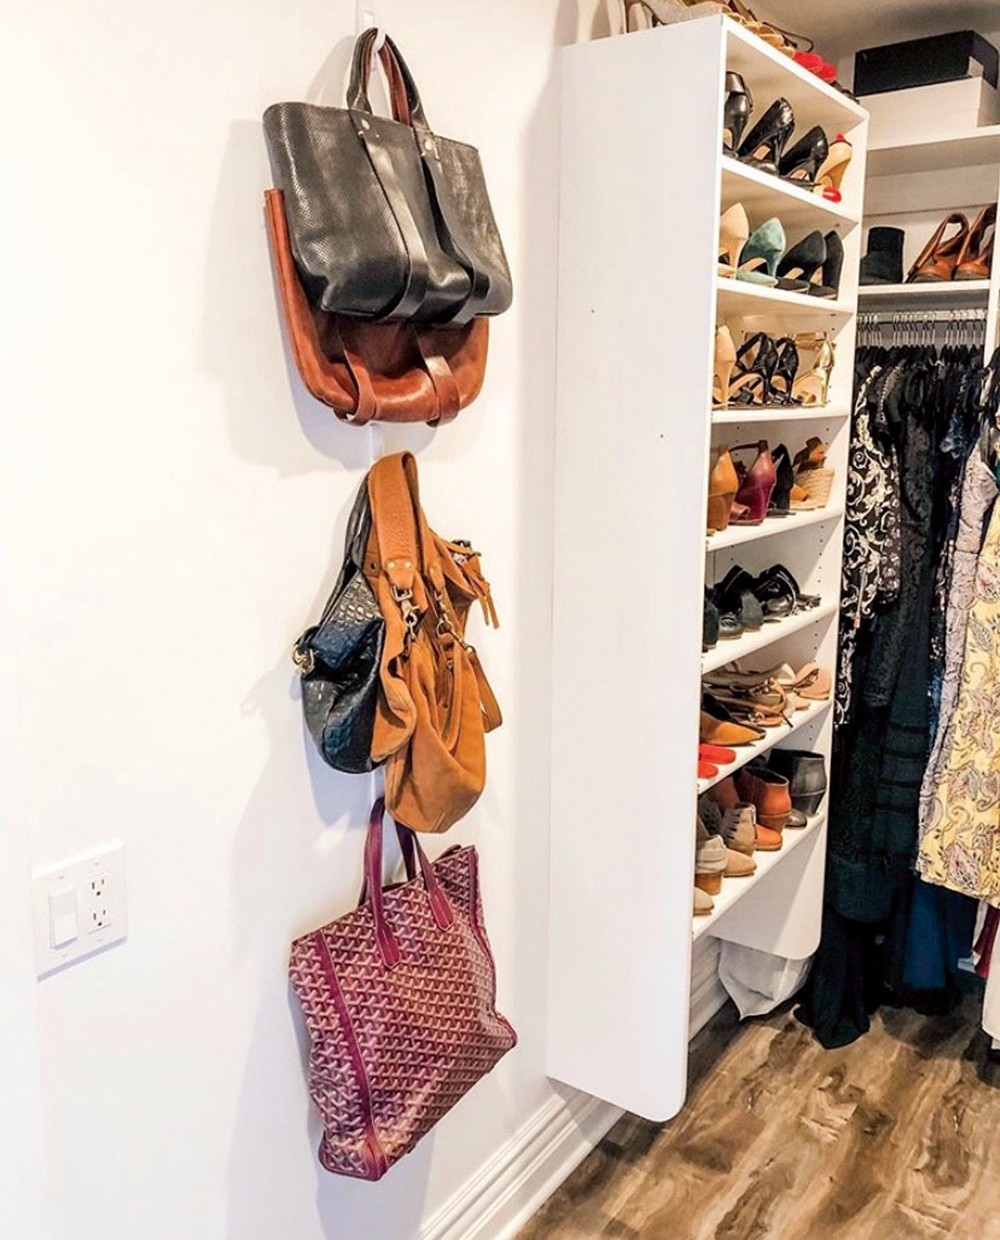 Use hooks to store handbags, and alternate shoes front to back to save space. - KARA DIXON